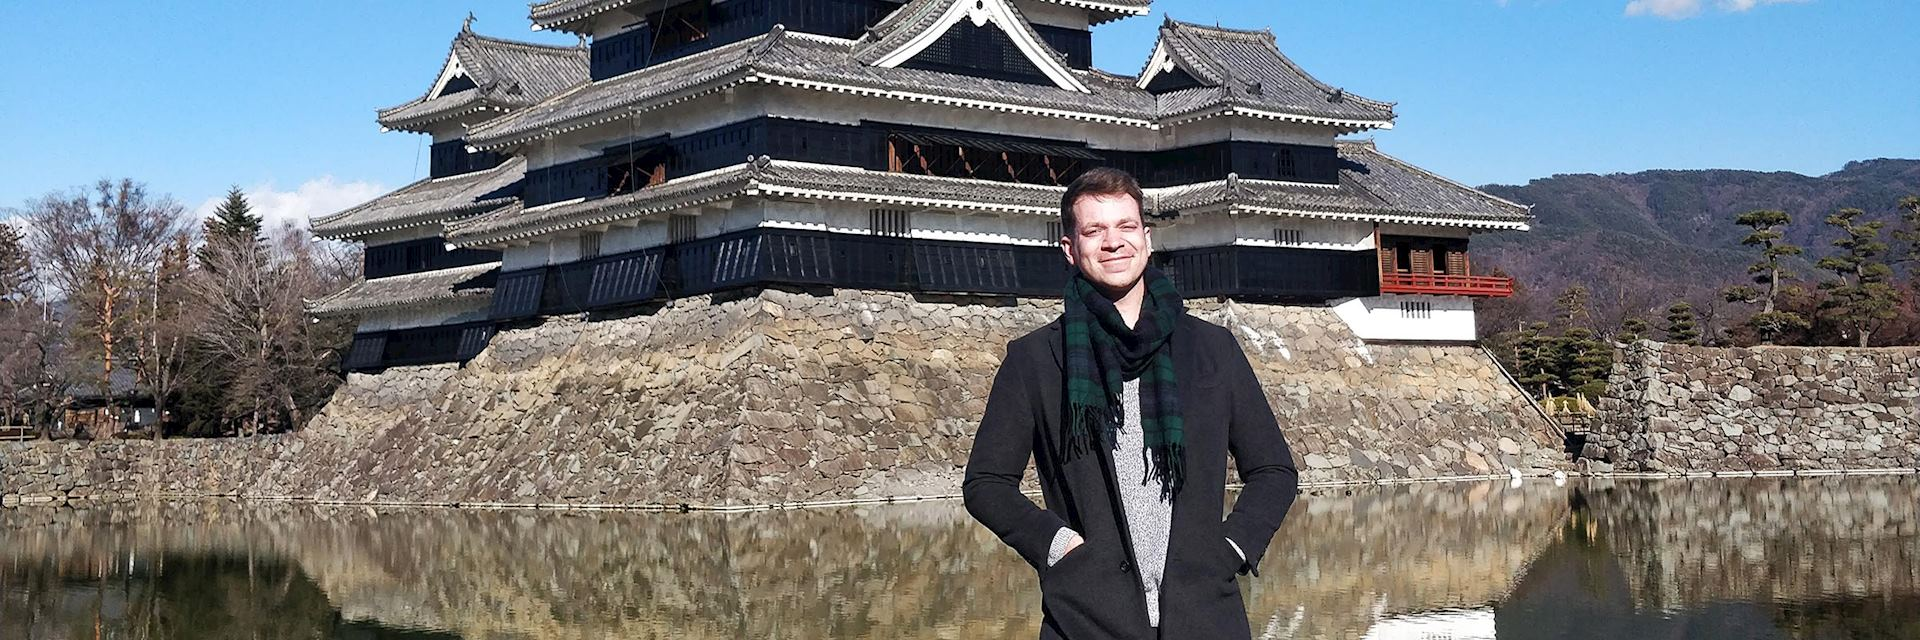 Matthew visiting Matsumoto Castle, Japan